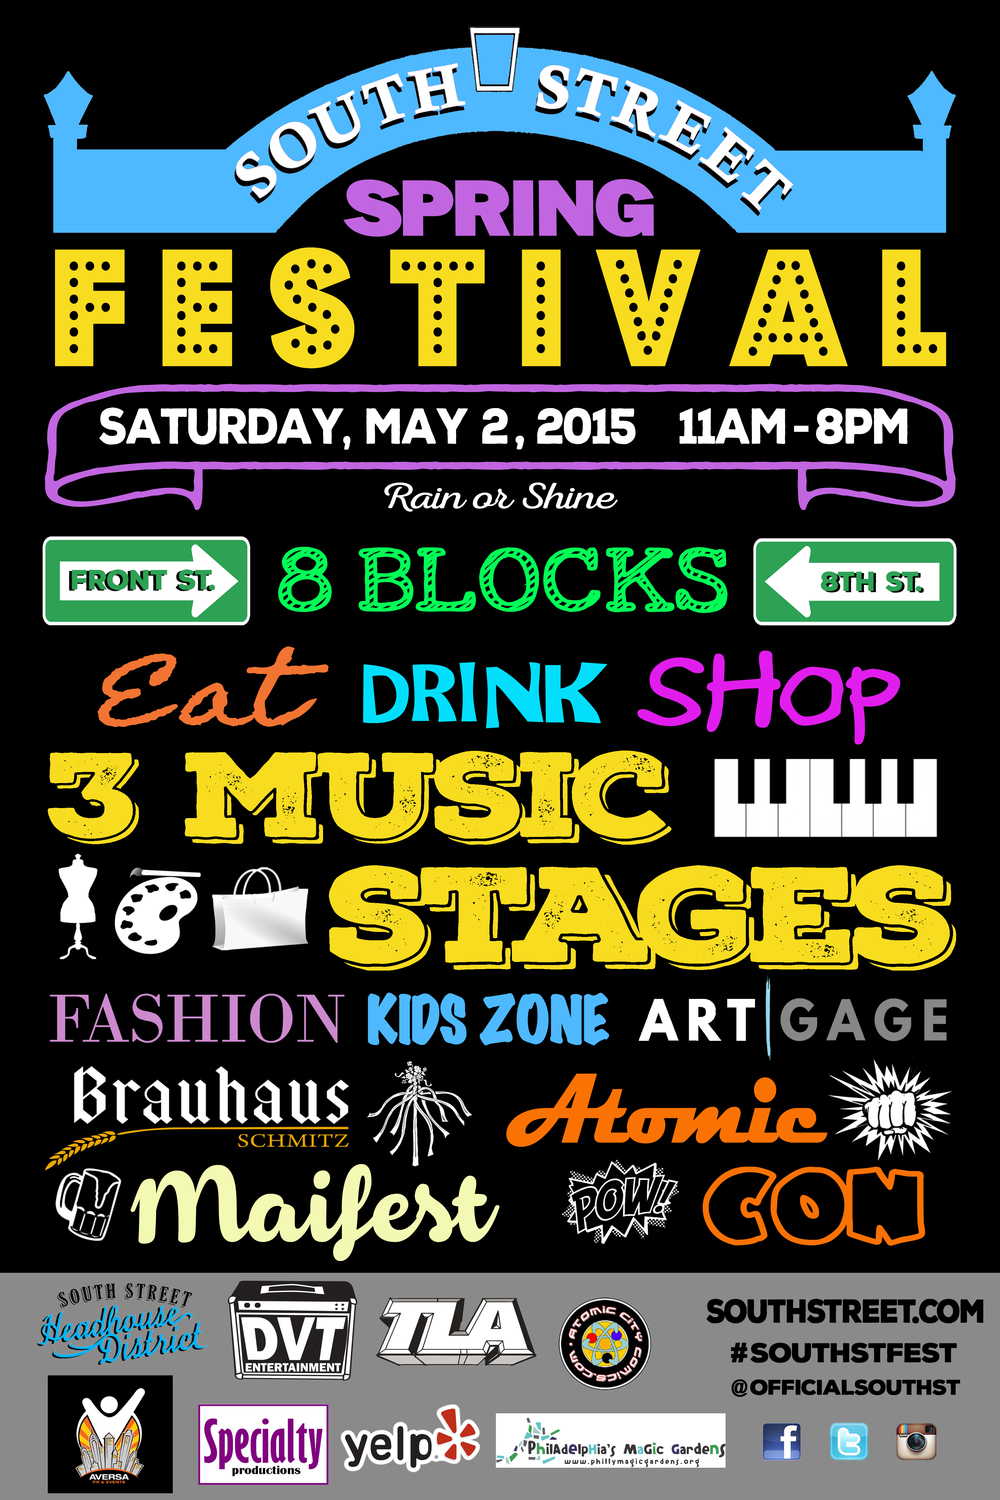 South street spring festival Saturday, May 2, 2015